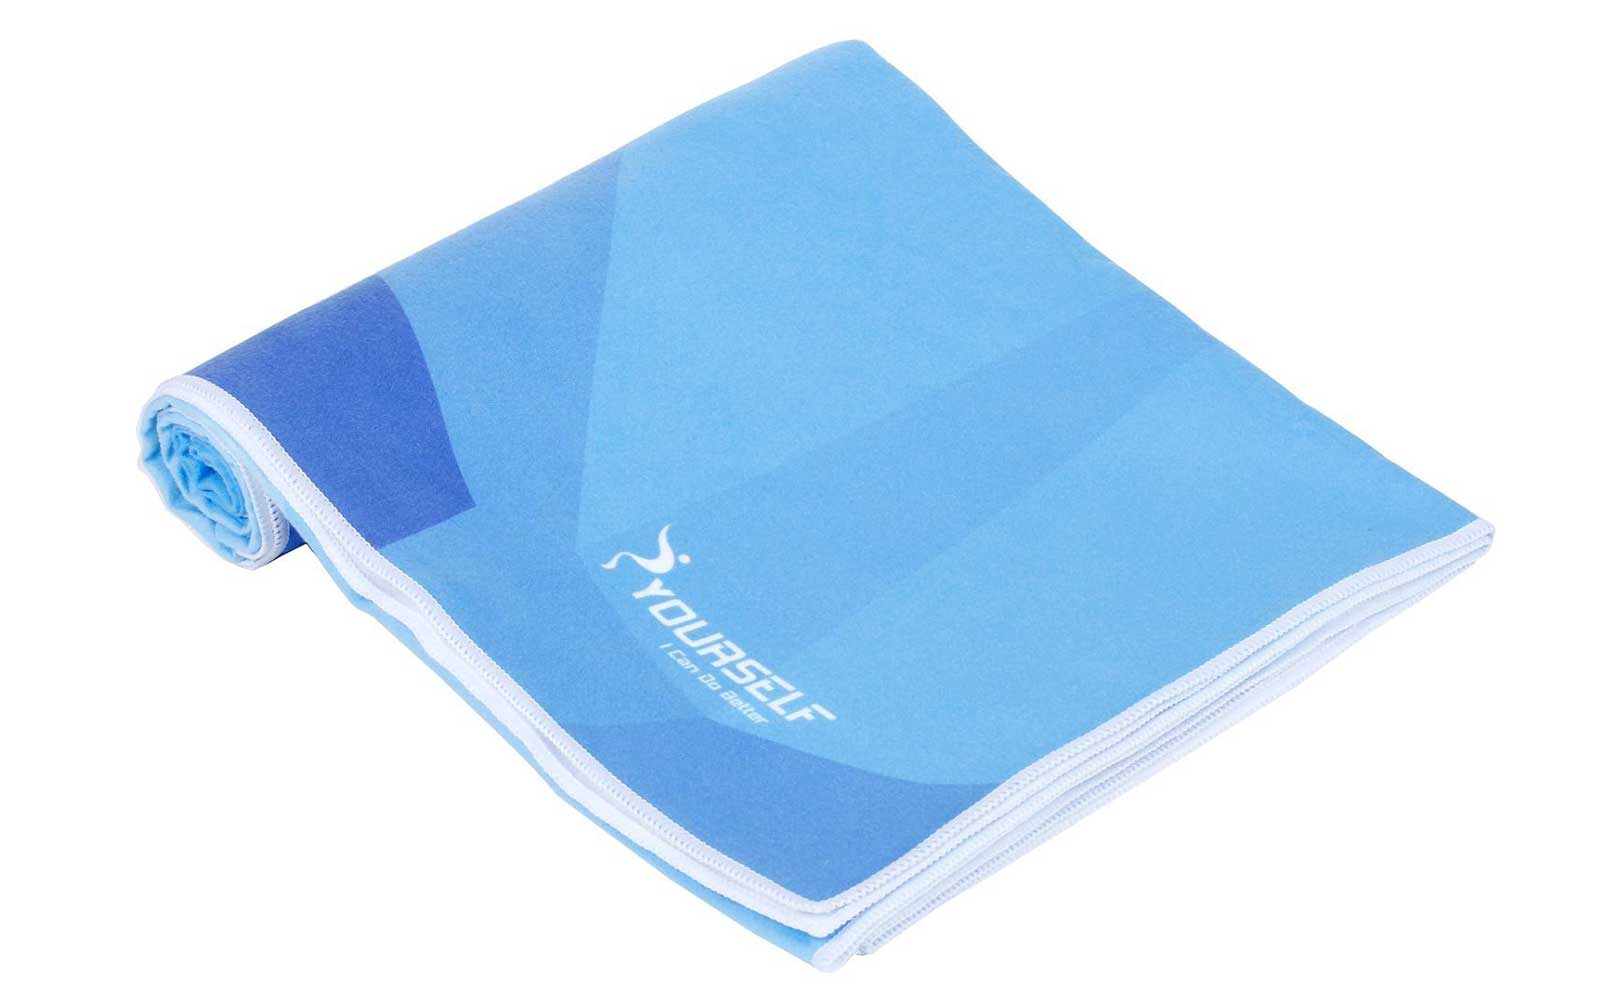 Microfiber Towel for sale on Amazon